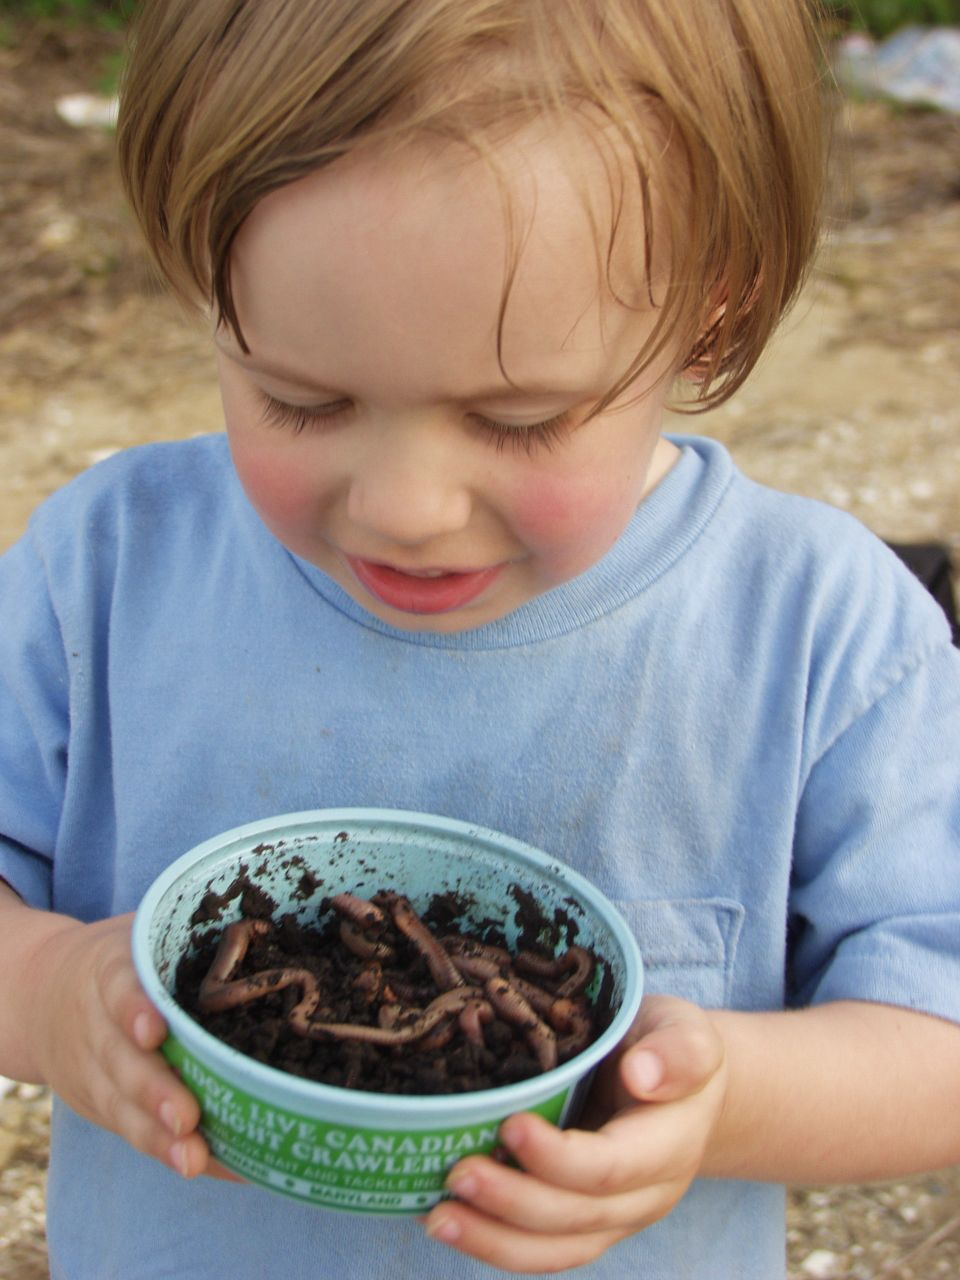 Vermicomposting is a sure way to get your kid into gardening.